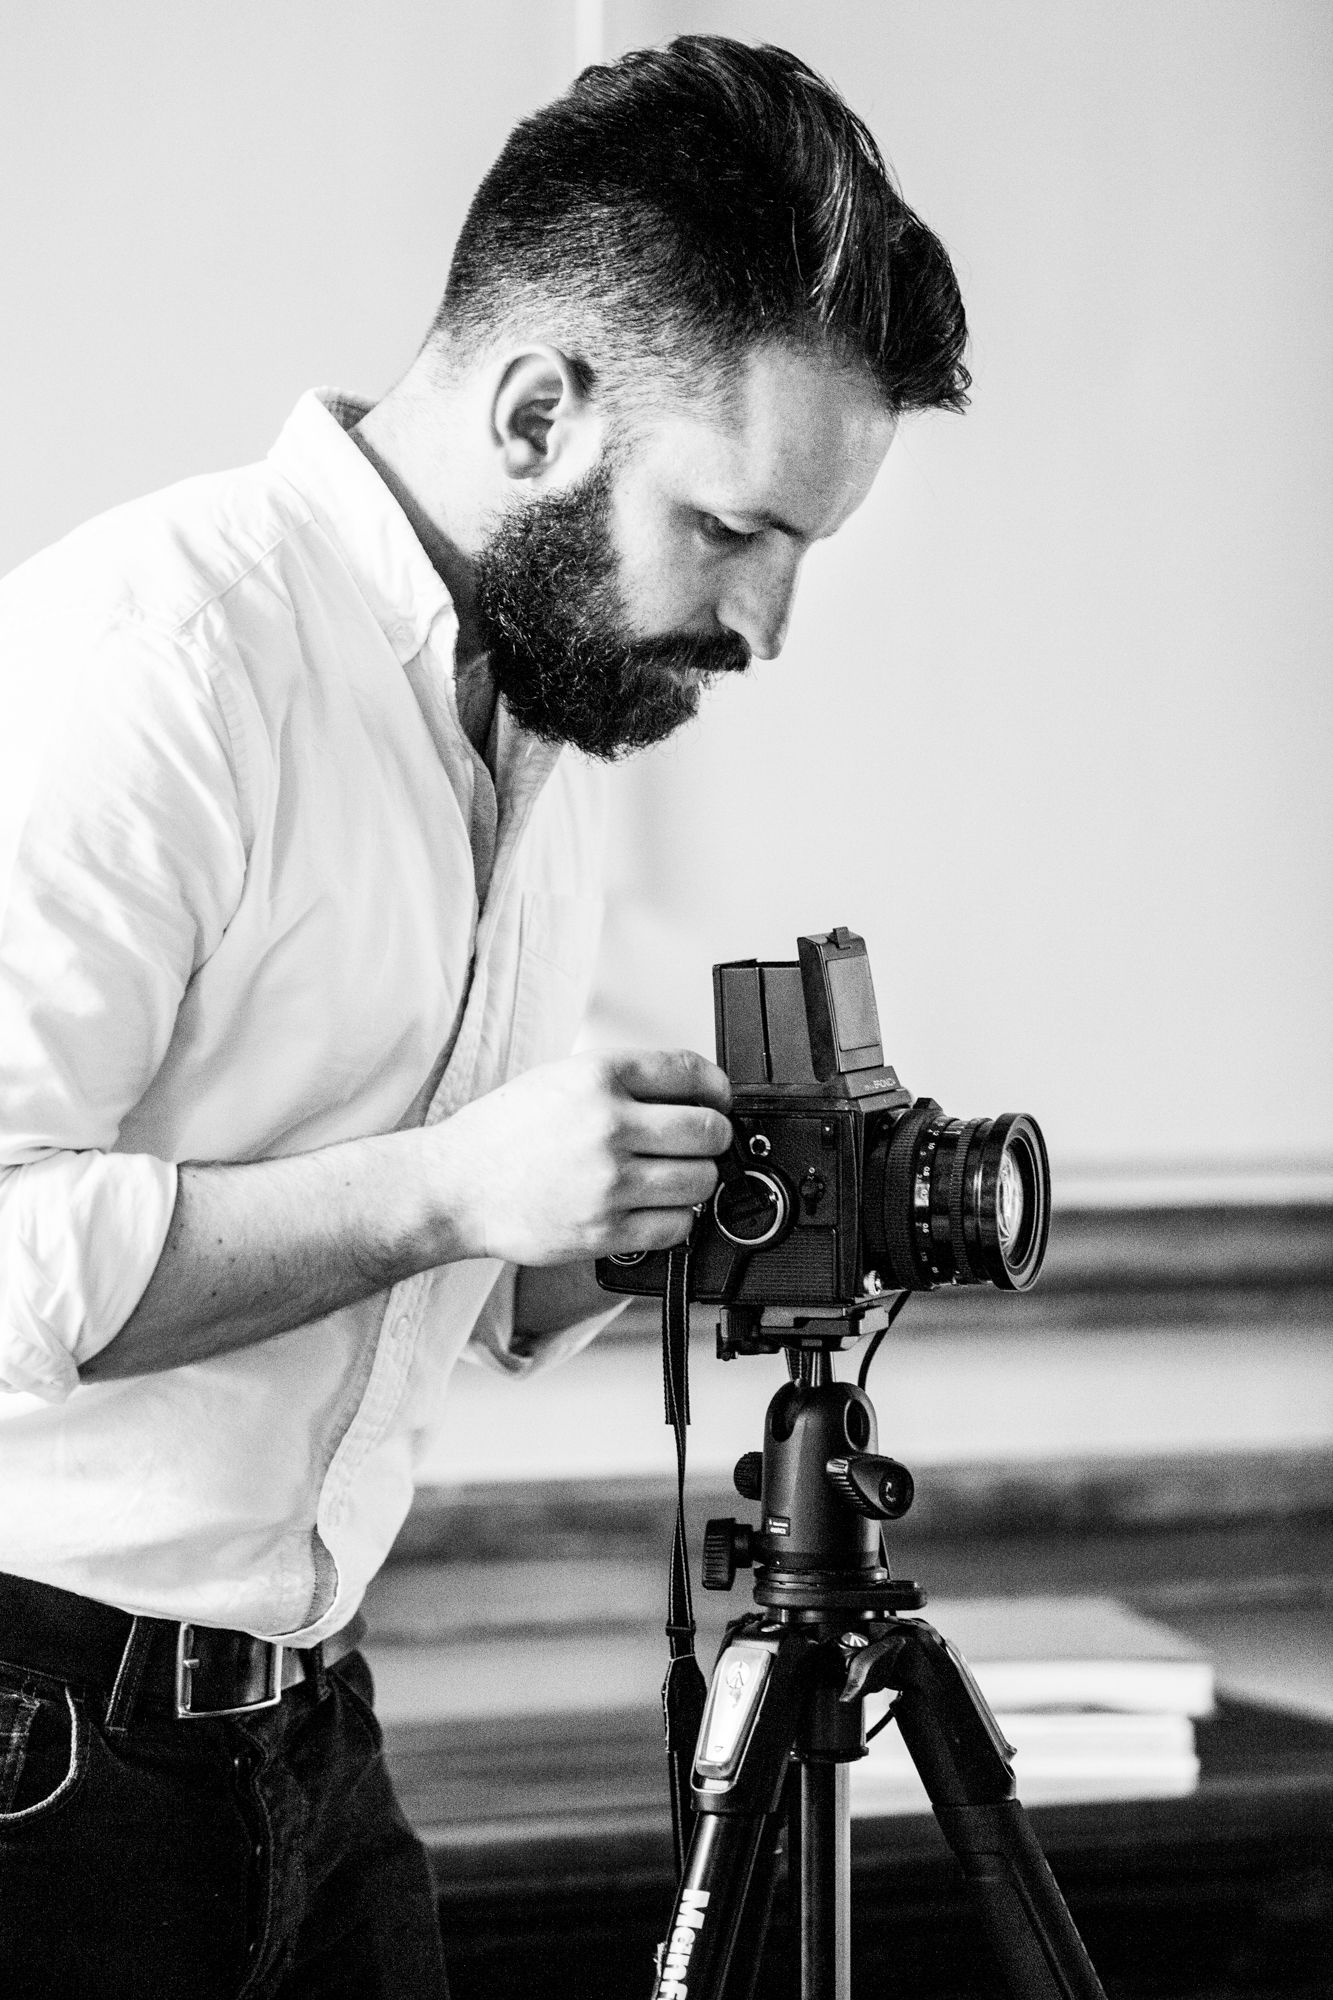 Photograph of Scott Choucino using a camera